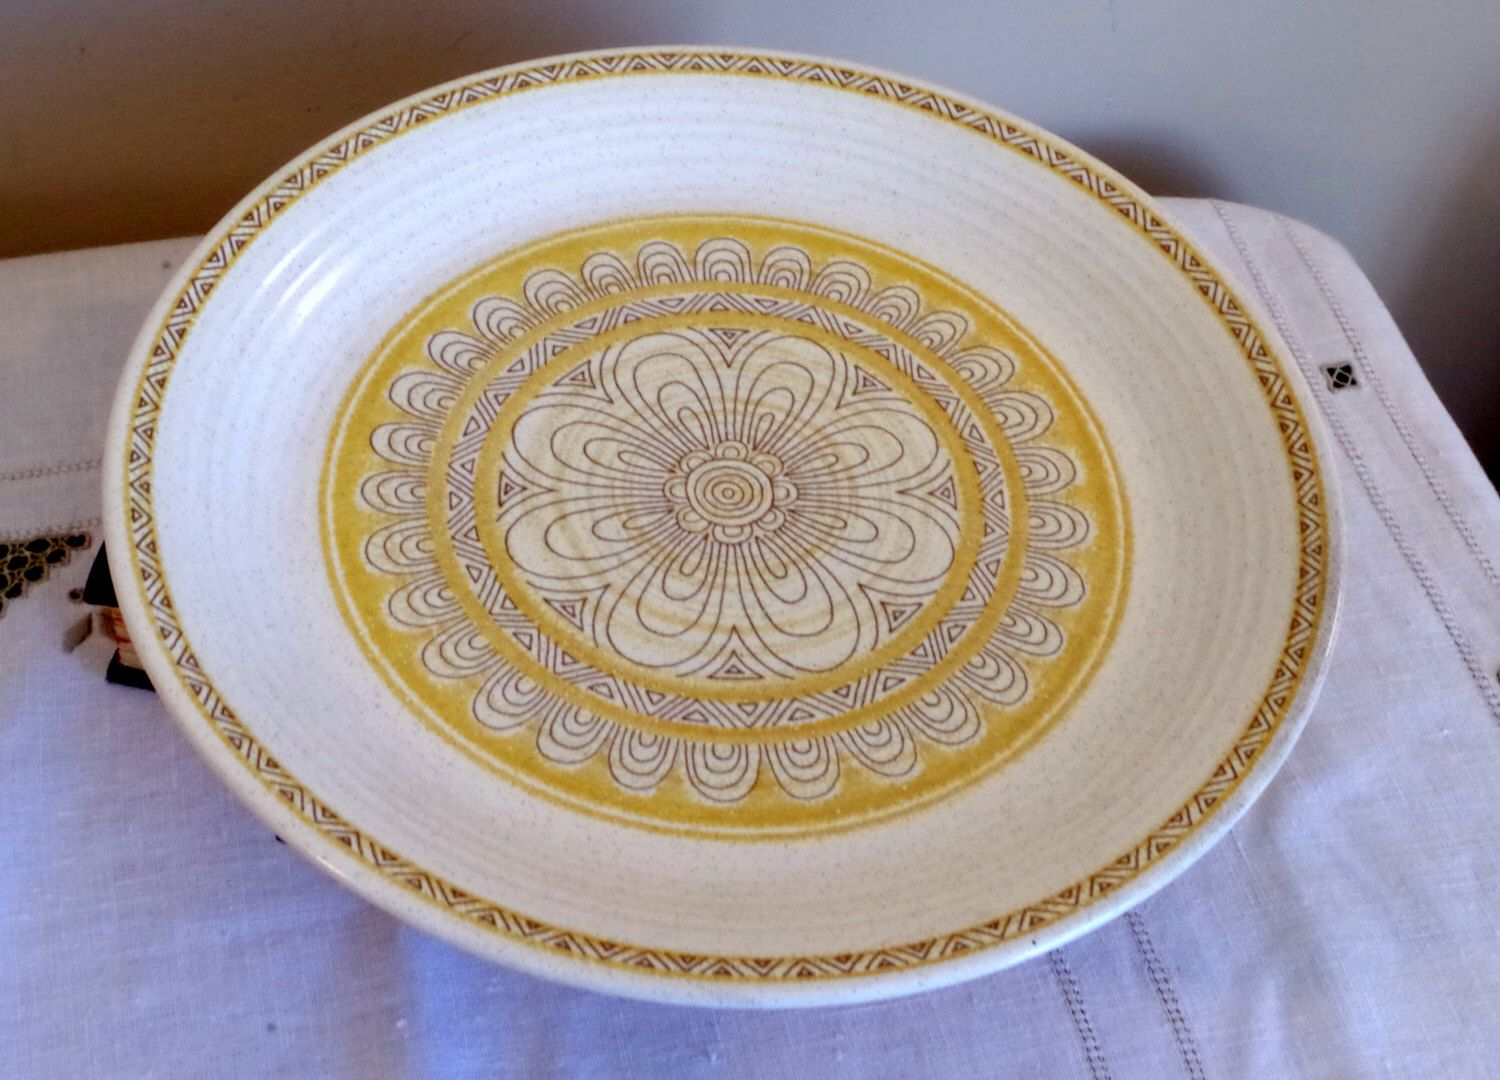 Franciscan Hacienda Dinner Plate- Earthenware California Pottery- Yellow Geometric Floral Pattern- Country Kitchen Chic by VintageByDollymae on Etsy https://www.etsy.com/listing/226971761/franciscan-hacienda-dinner-plate